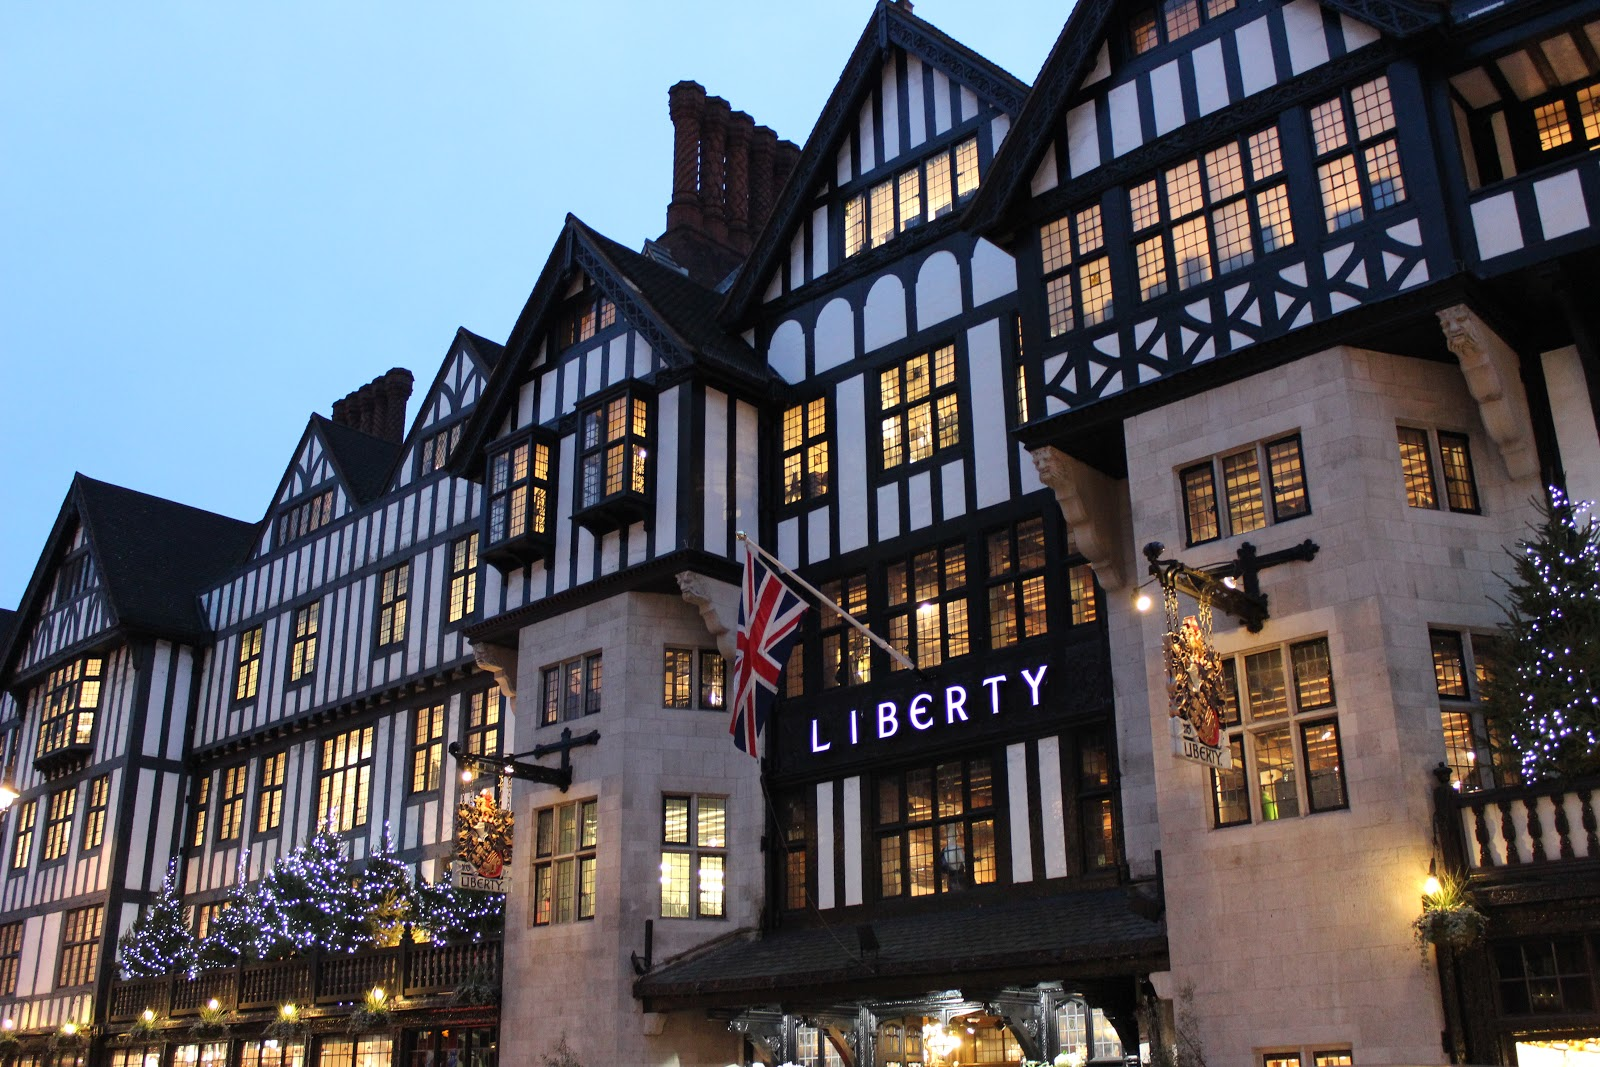 Find more information about the store here:   www.liberty.co.uk